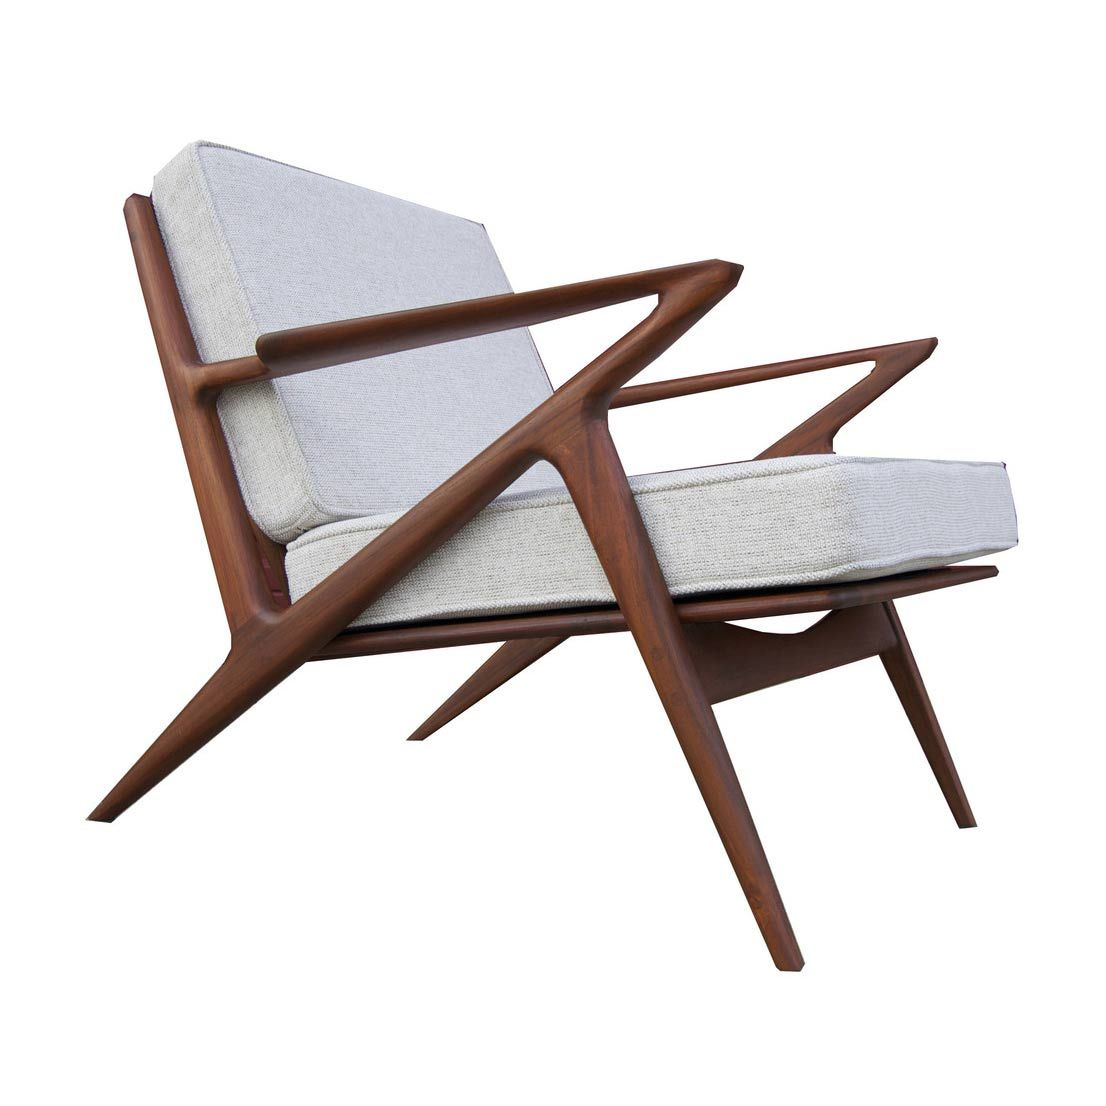 Timeless design meets high-quality craftsmanship in the Palm Springs Lounge  Chair. Reclaimed teak